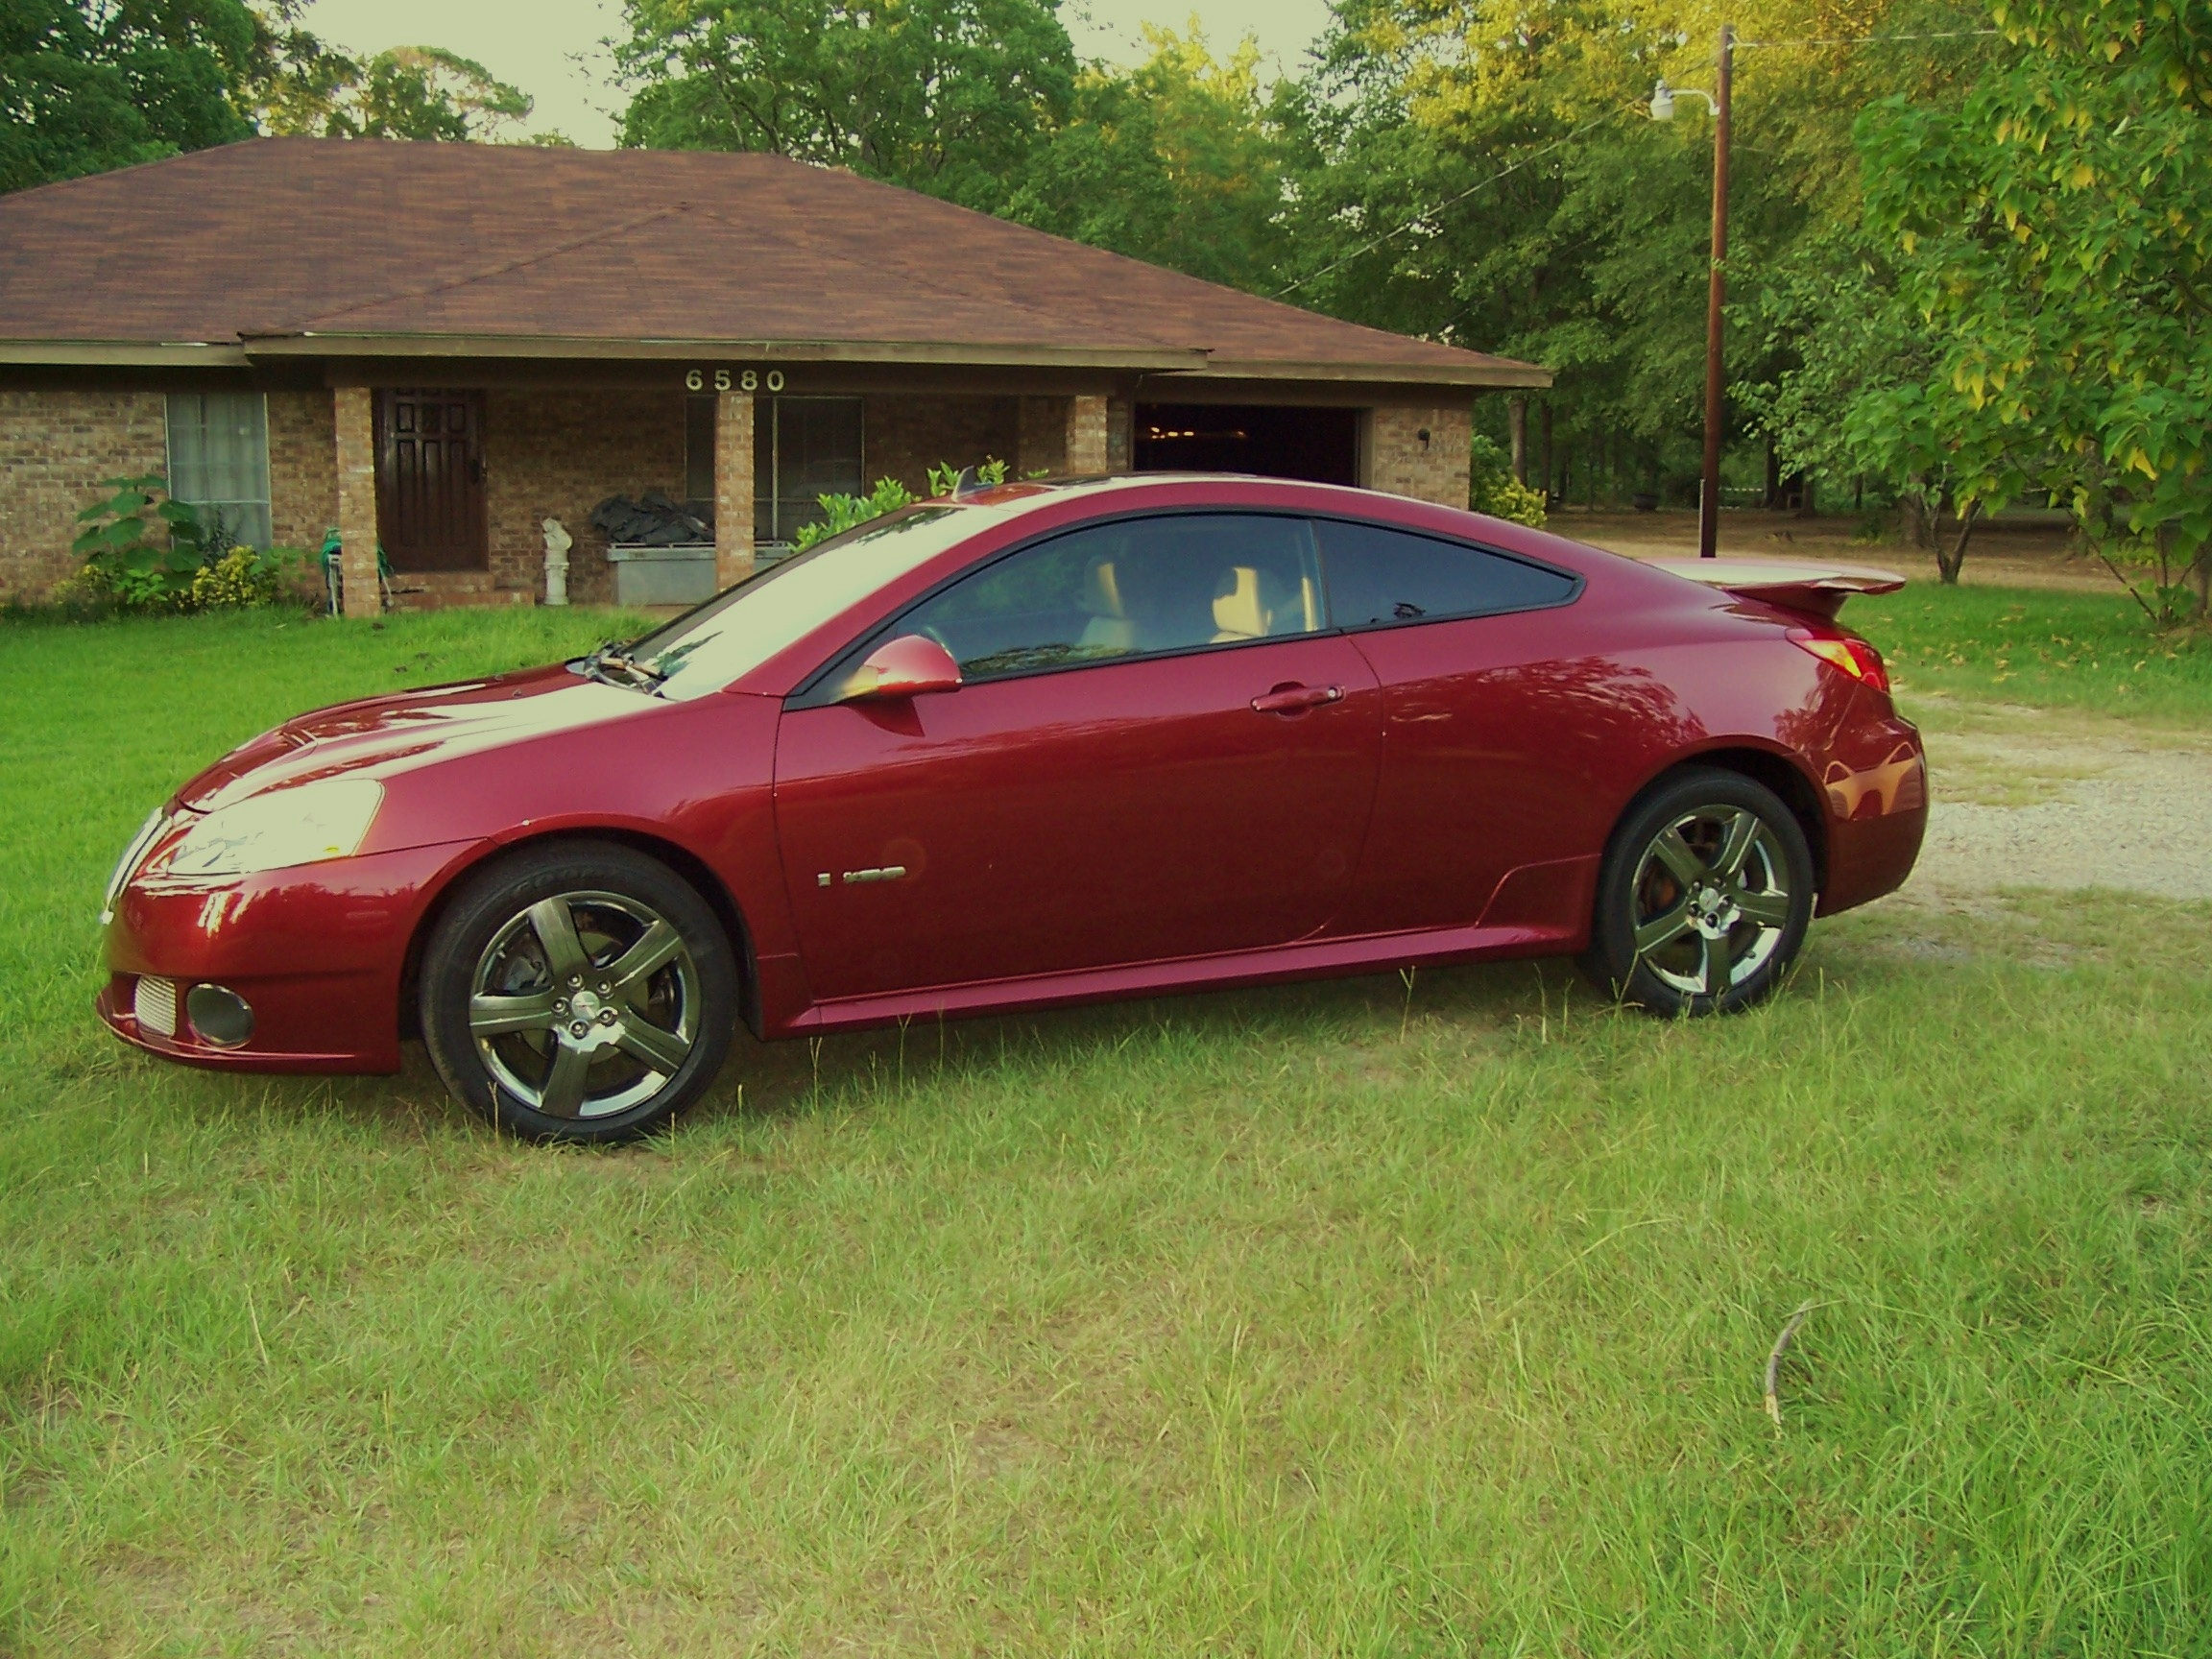 Chrisadkins 2008 Pontiac G6gxp Coupe 2d Specs Photos